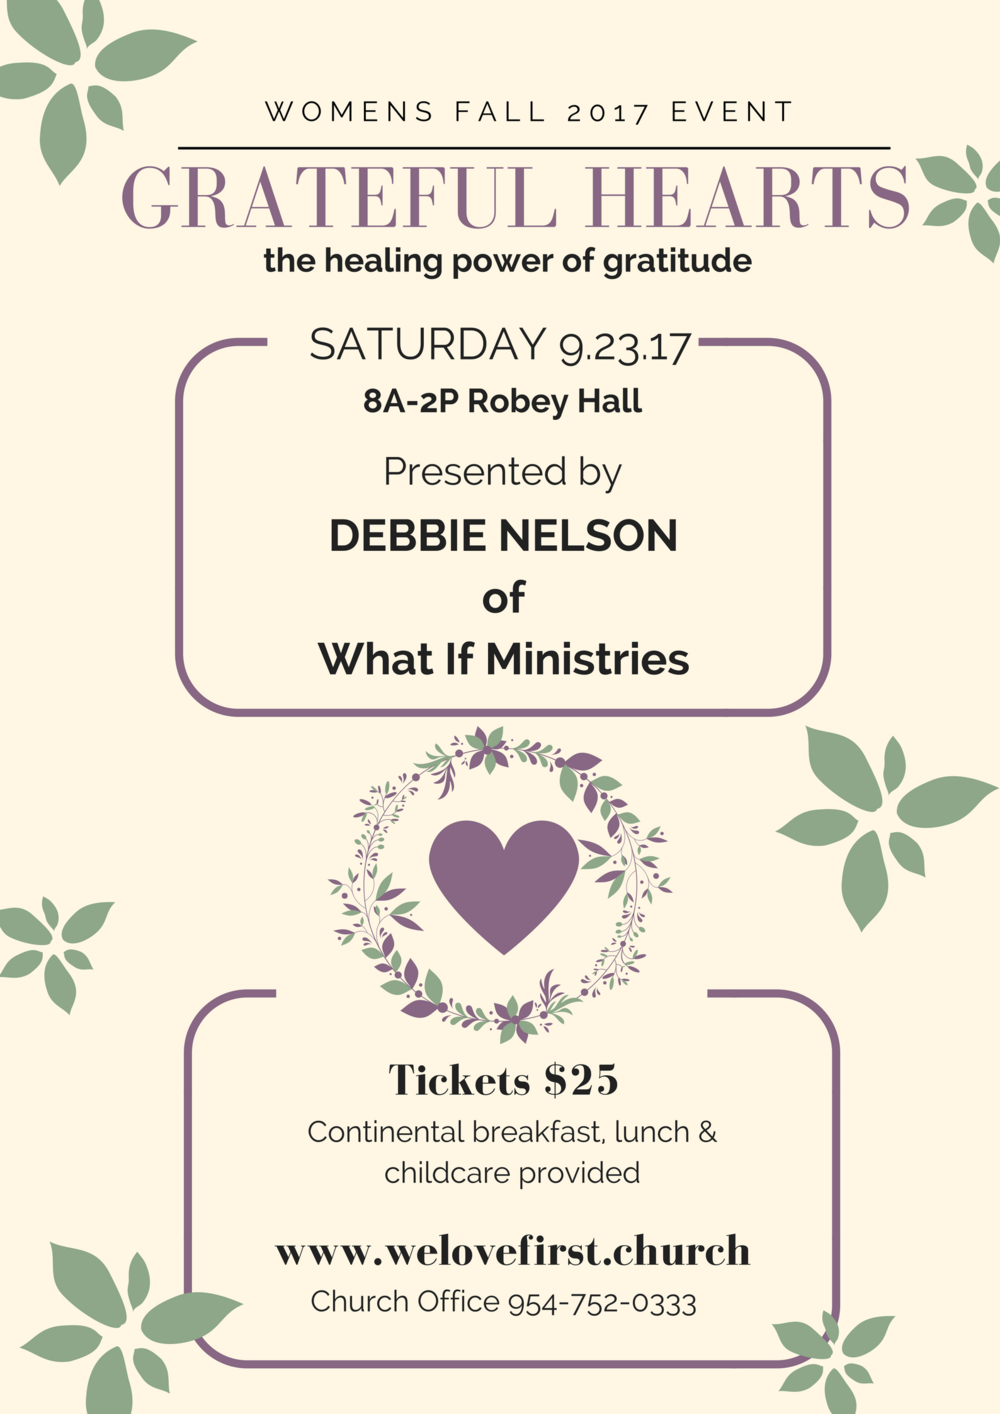 Fall 2017 womens ministry event first church coral springs join us at first church coral springs on saturday september 23rd for a faith filled day of learning fellowship and fun pastor debbie nelson will share mightylinksfo